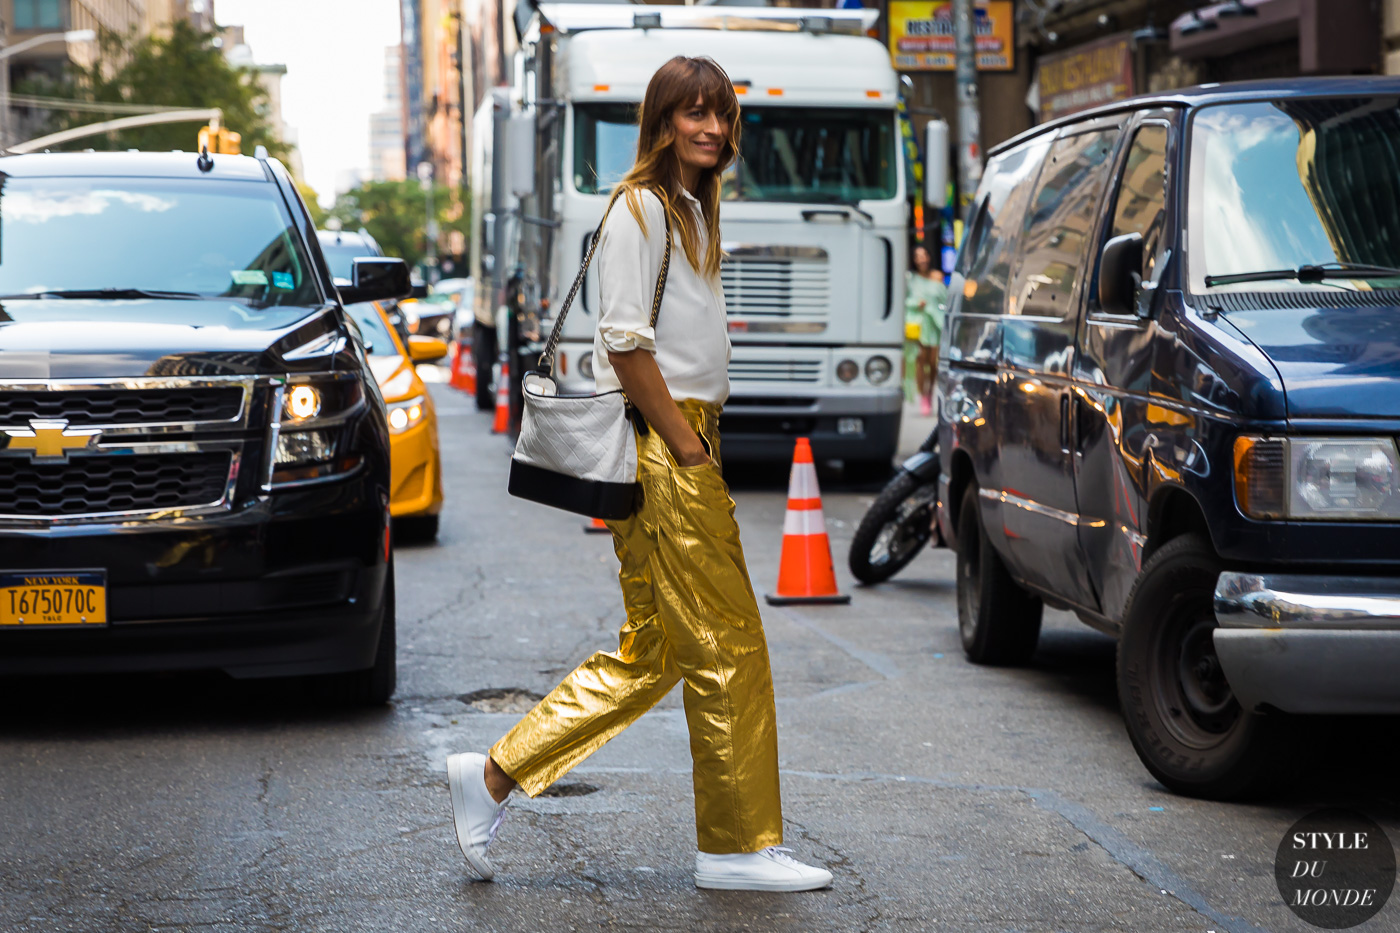 Caroline de Maigret by STYLEDUMONDE Street Style Fashion Photography_48A5691